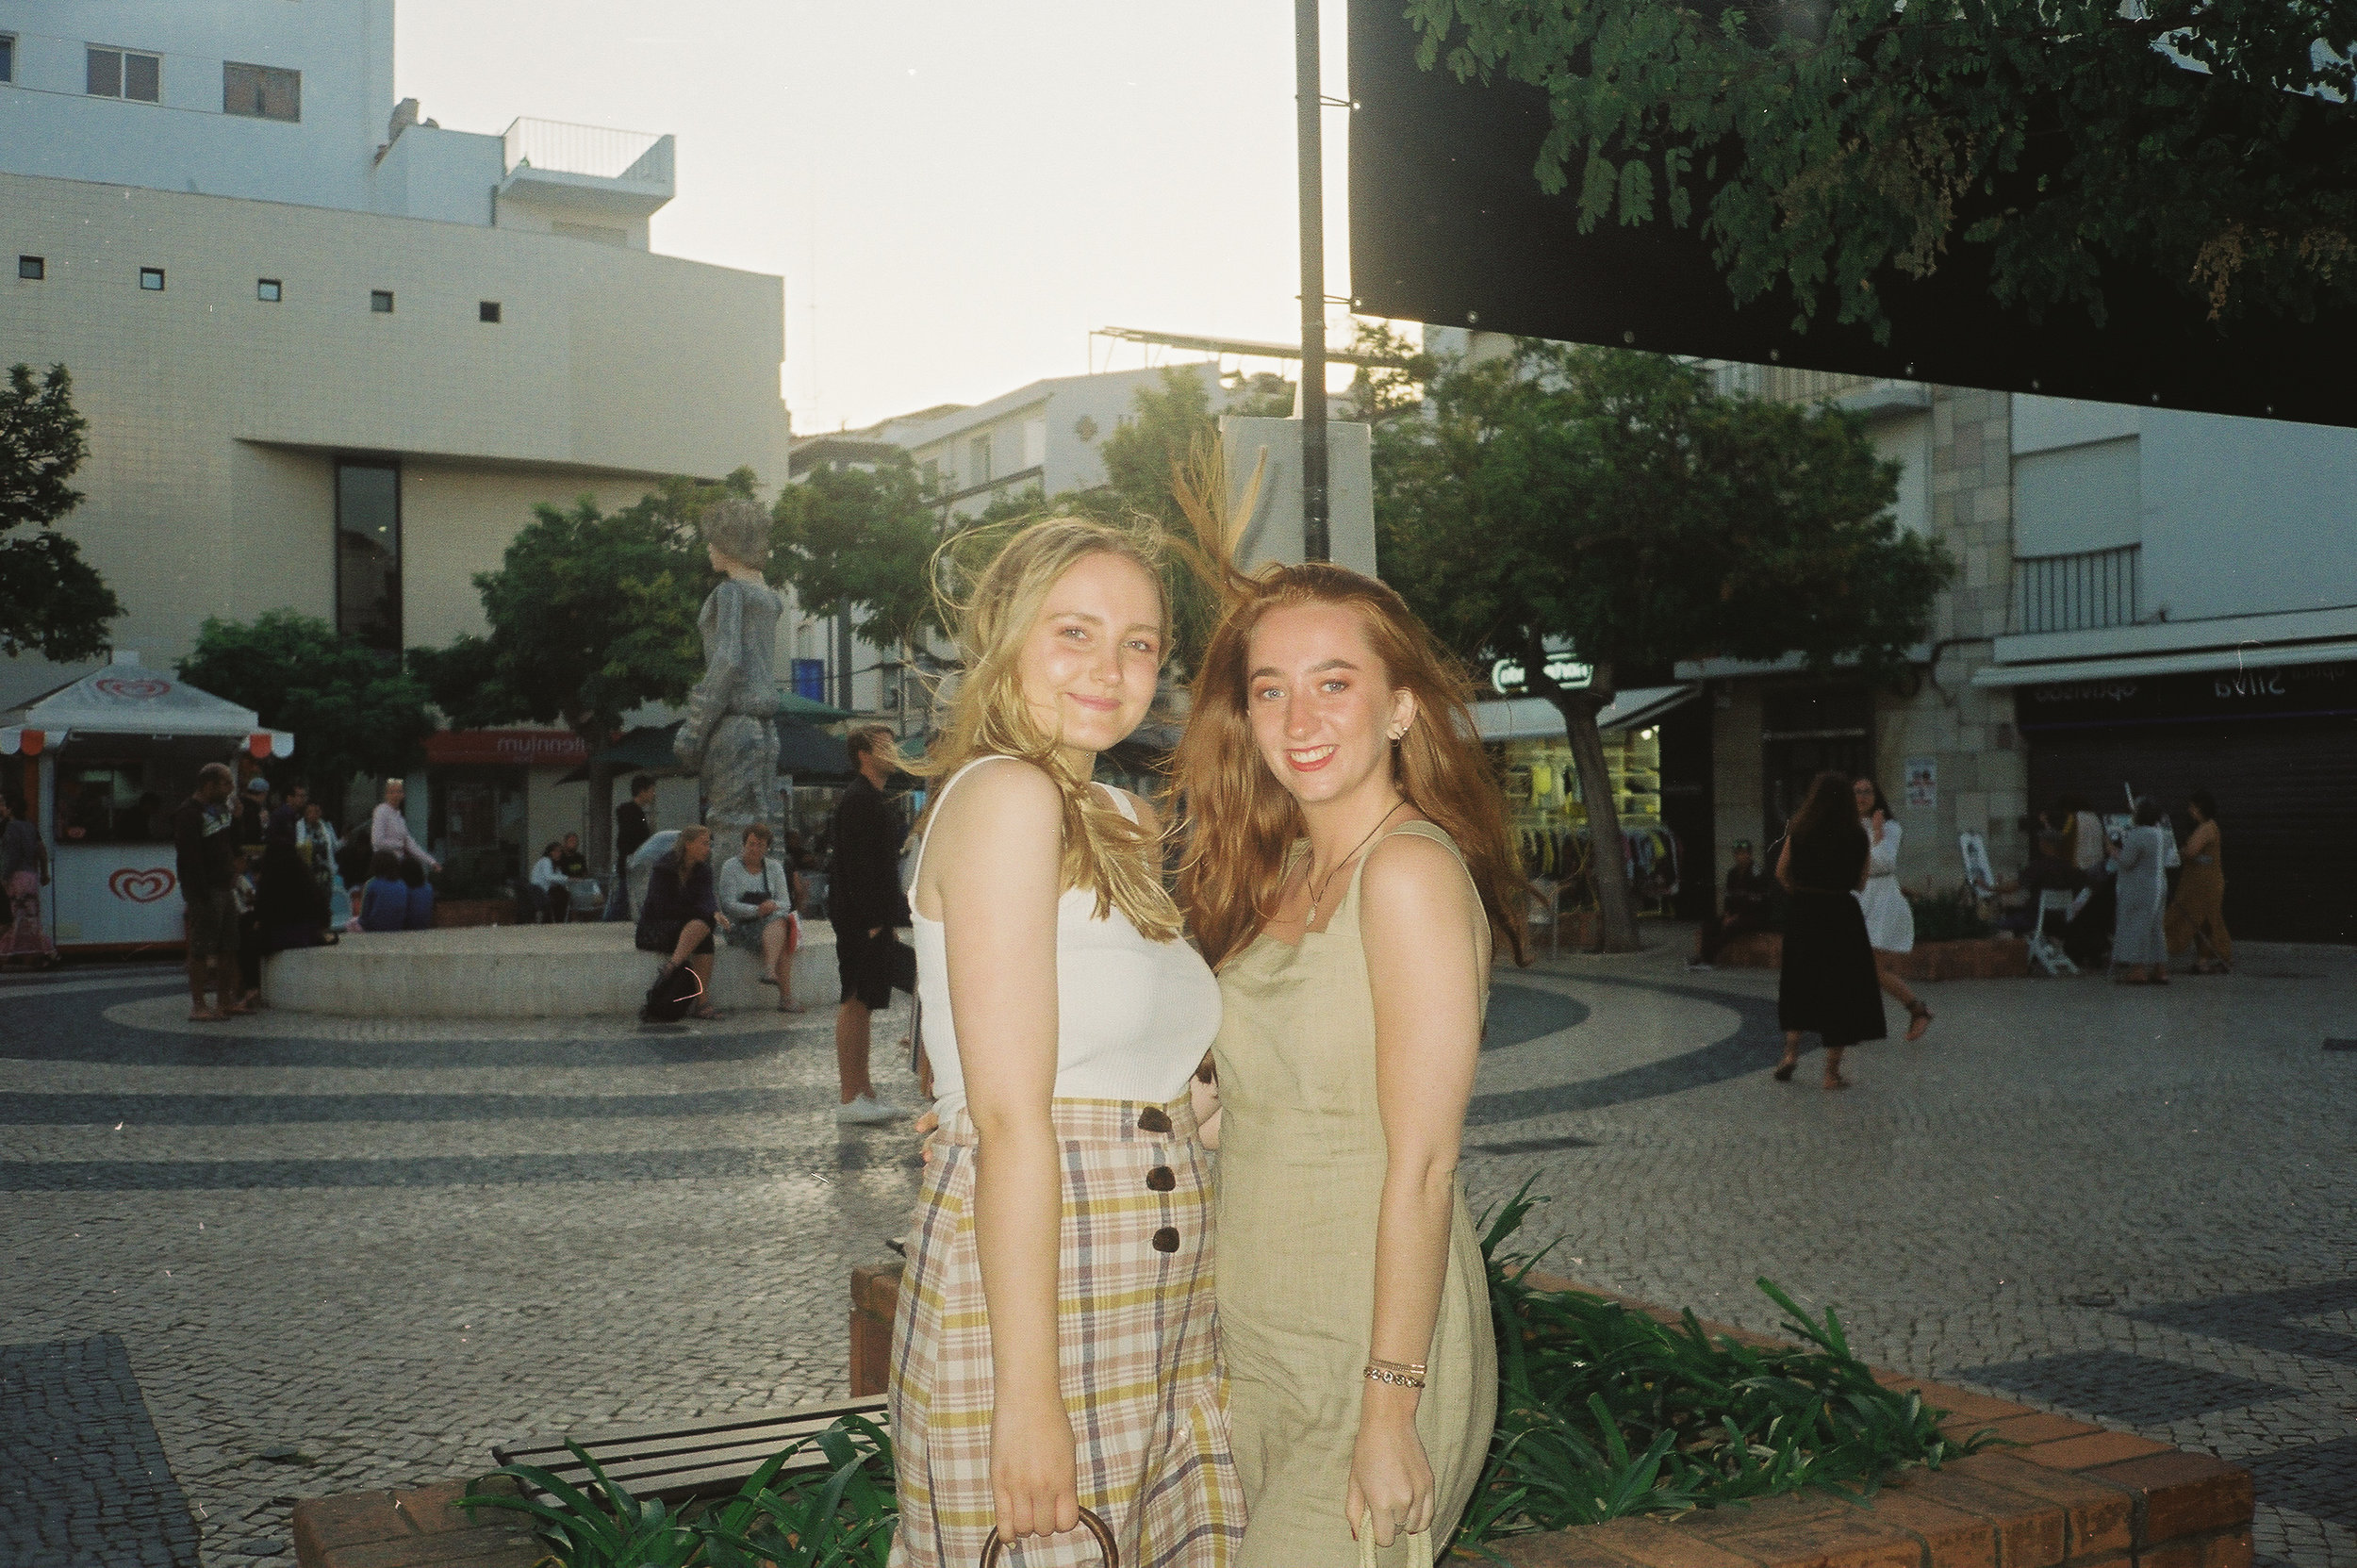 a-girls-trip-to-portugal-on-35mm-film26.jpg